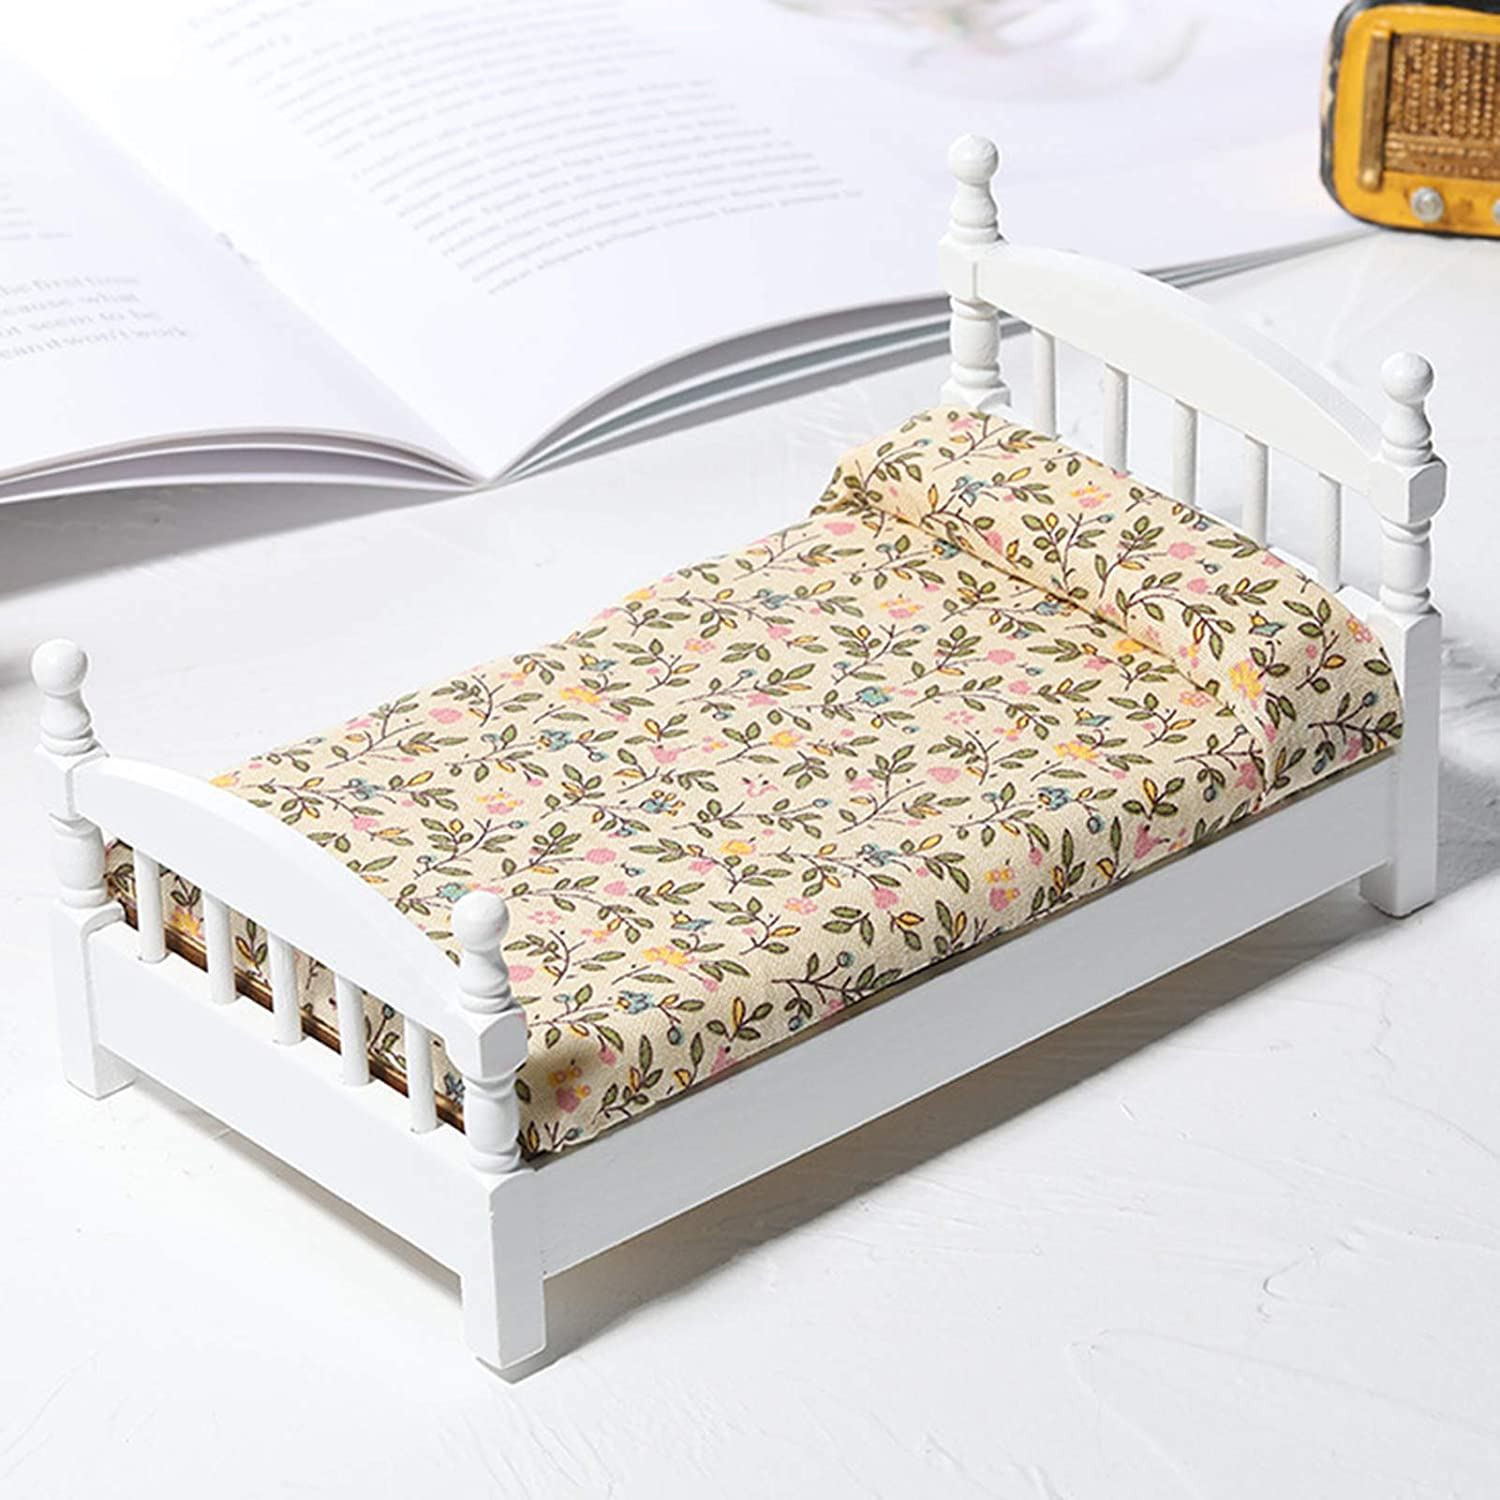 helegeSONG 1/12 Scale Dollhouse White Wooden Bed with Mattress & Pillow Miniiature Dollhouse Furniture Dollhouse Decor